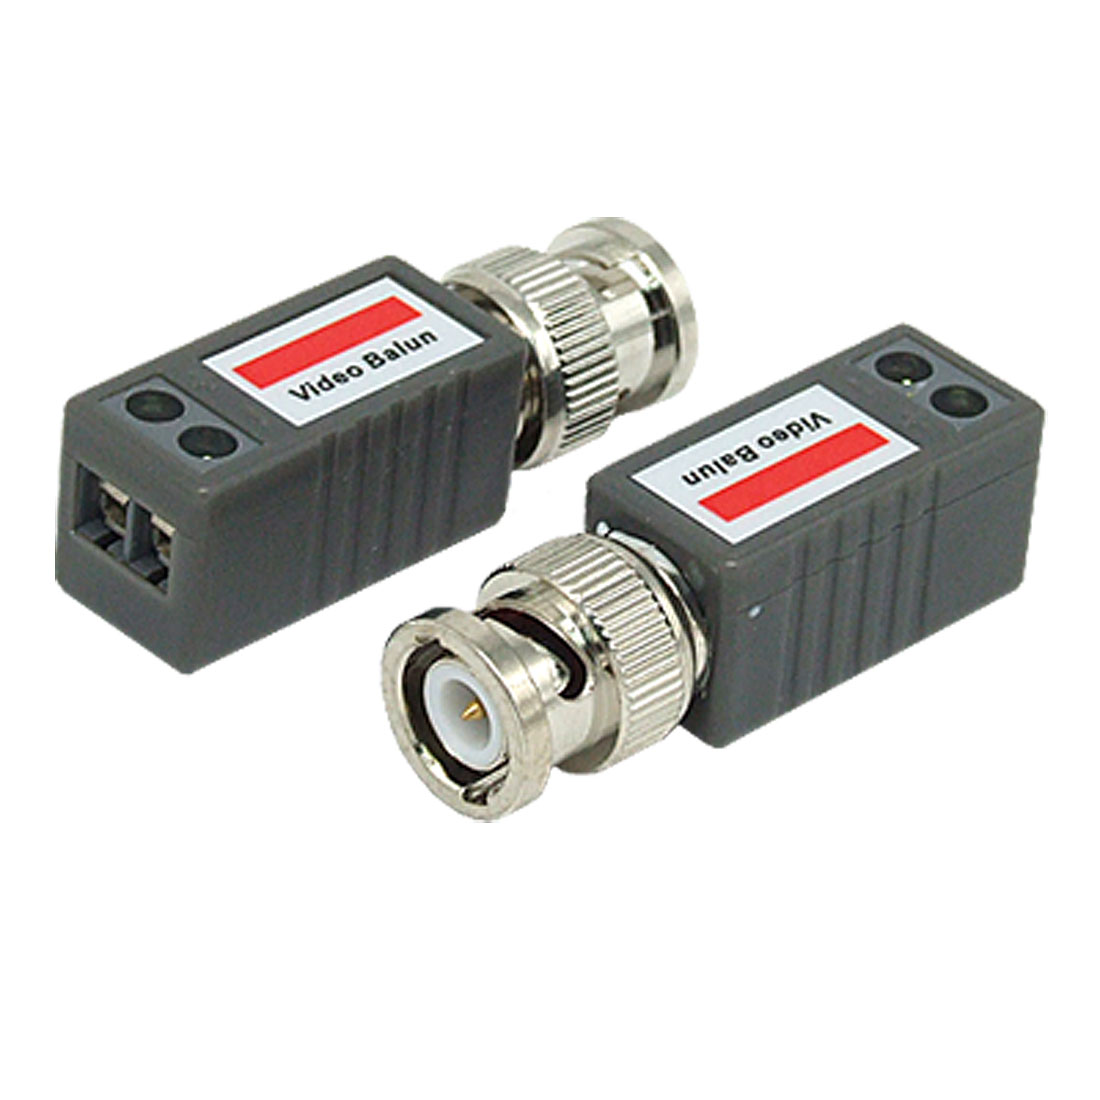 2 Pcs CCTV Passive Video Balun UTP BNC Cat5 Transceiver Adapter